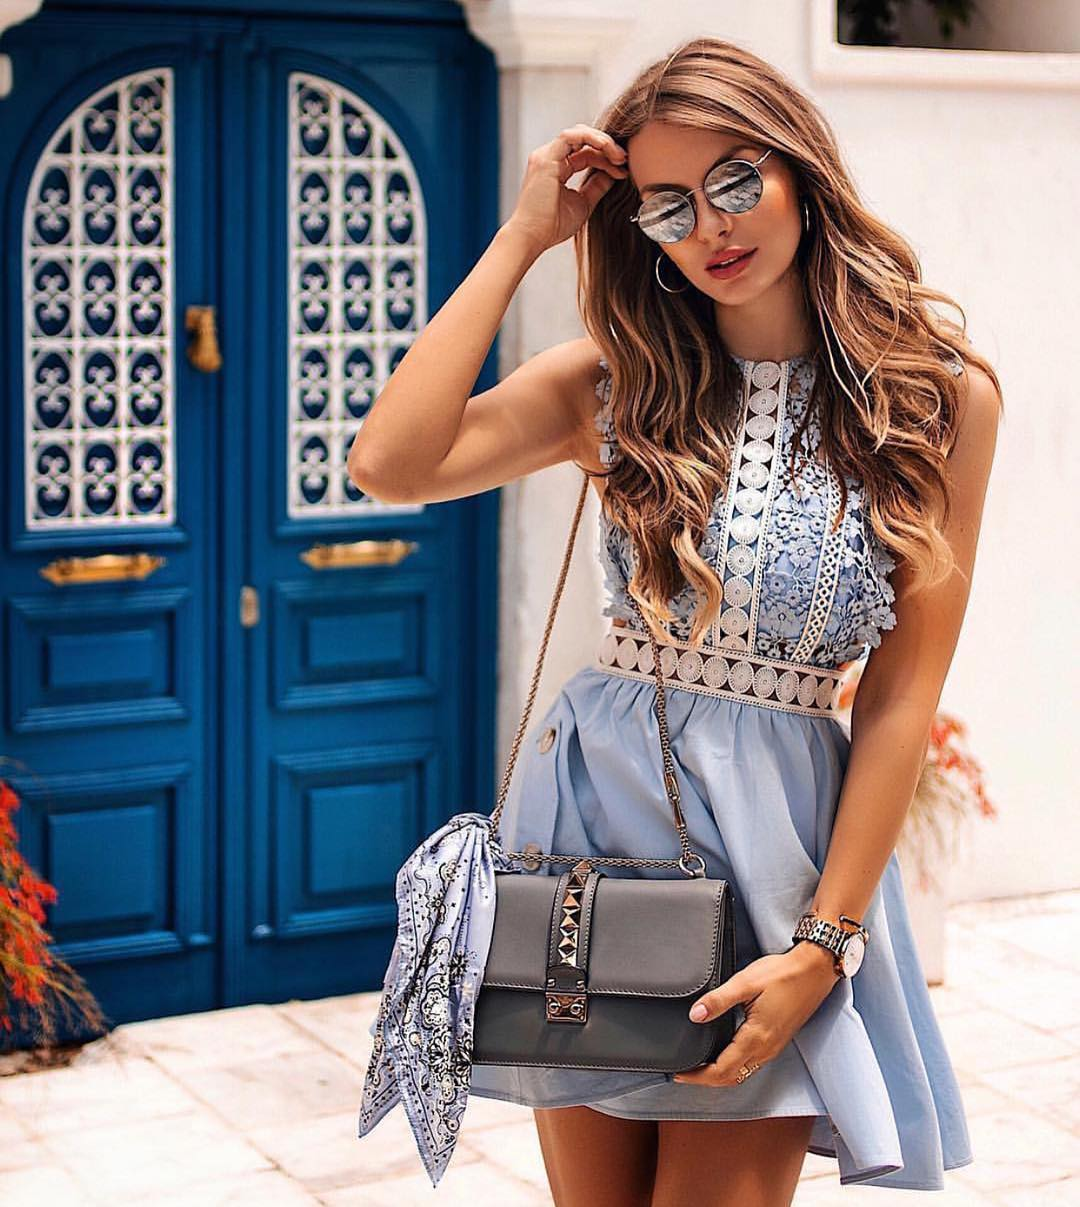 Boho Style Sleeveless Light Blue Dress For Summer Vacation 2020